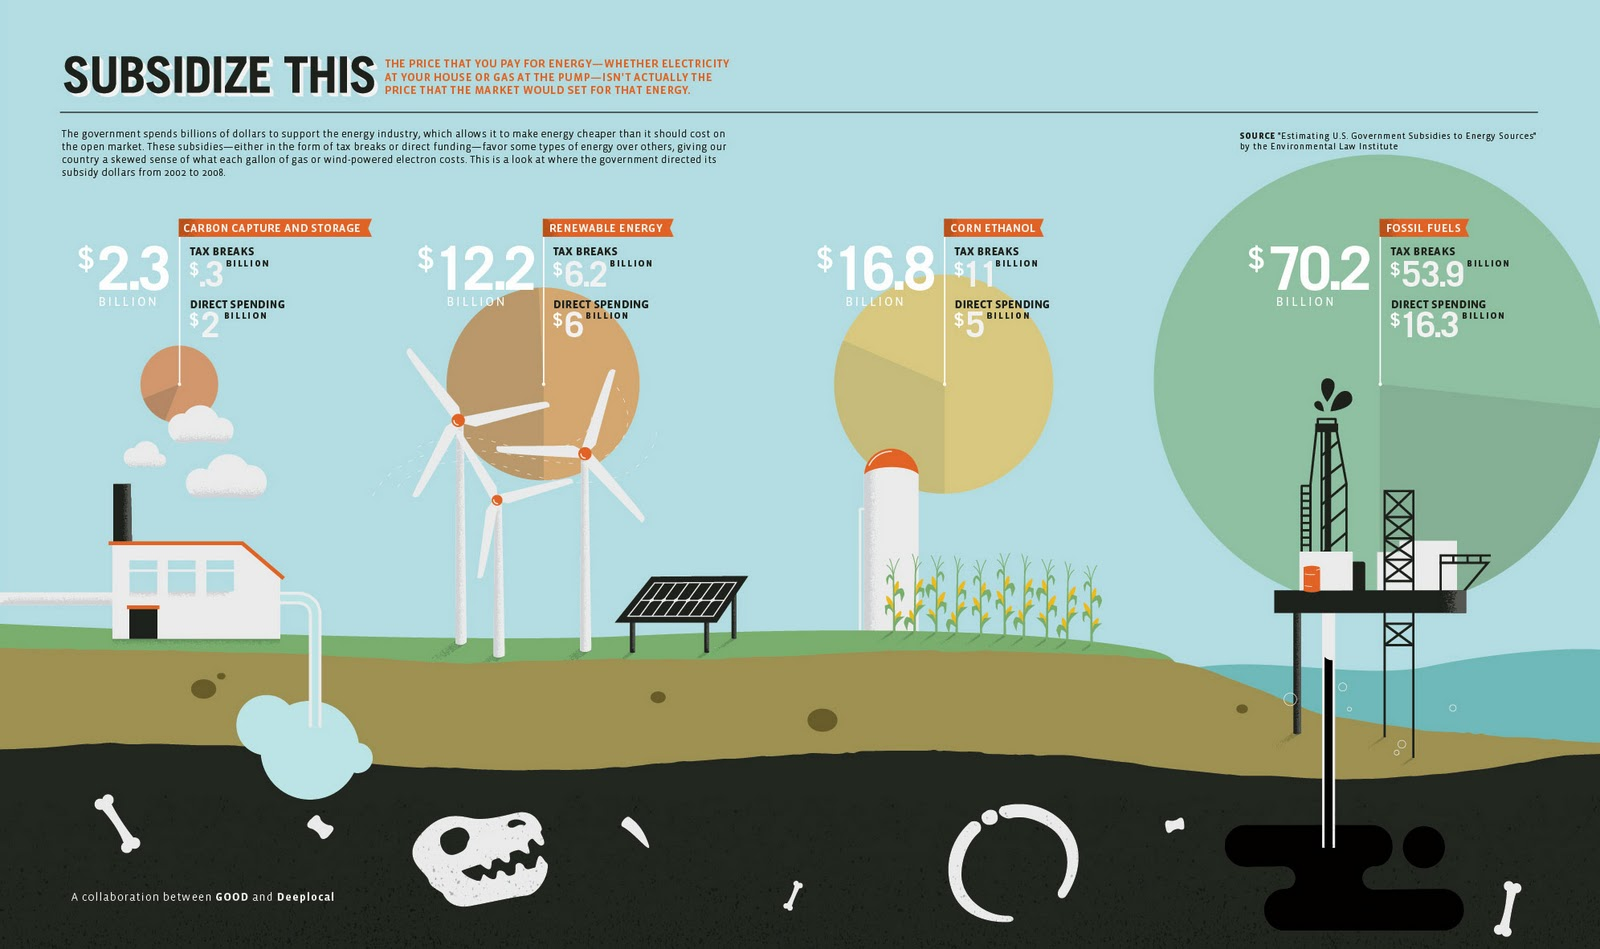 How Much Does the United States Subsidize Energy